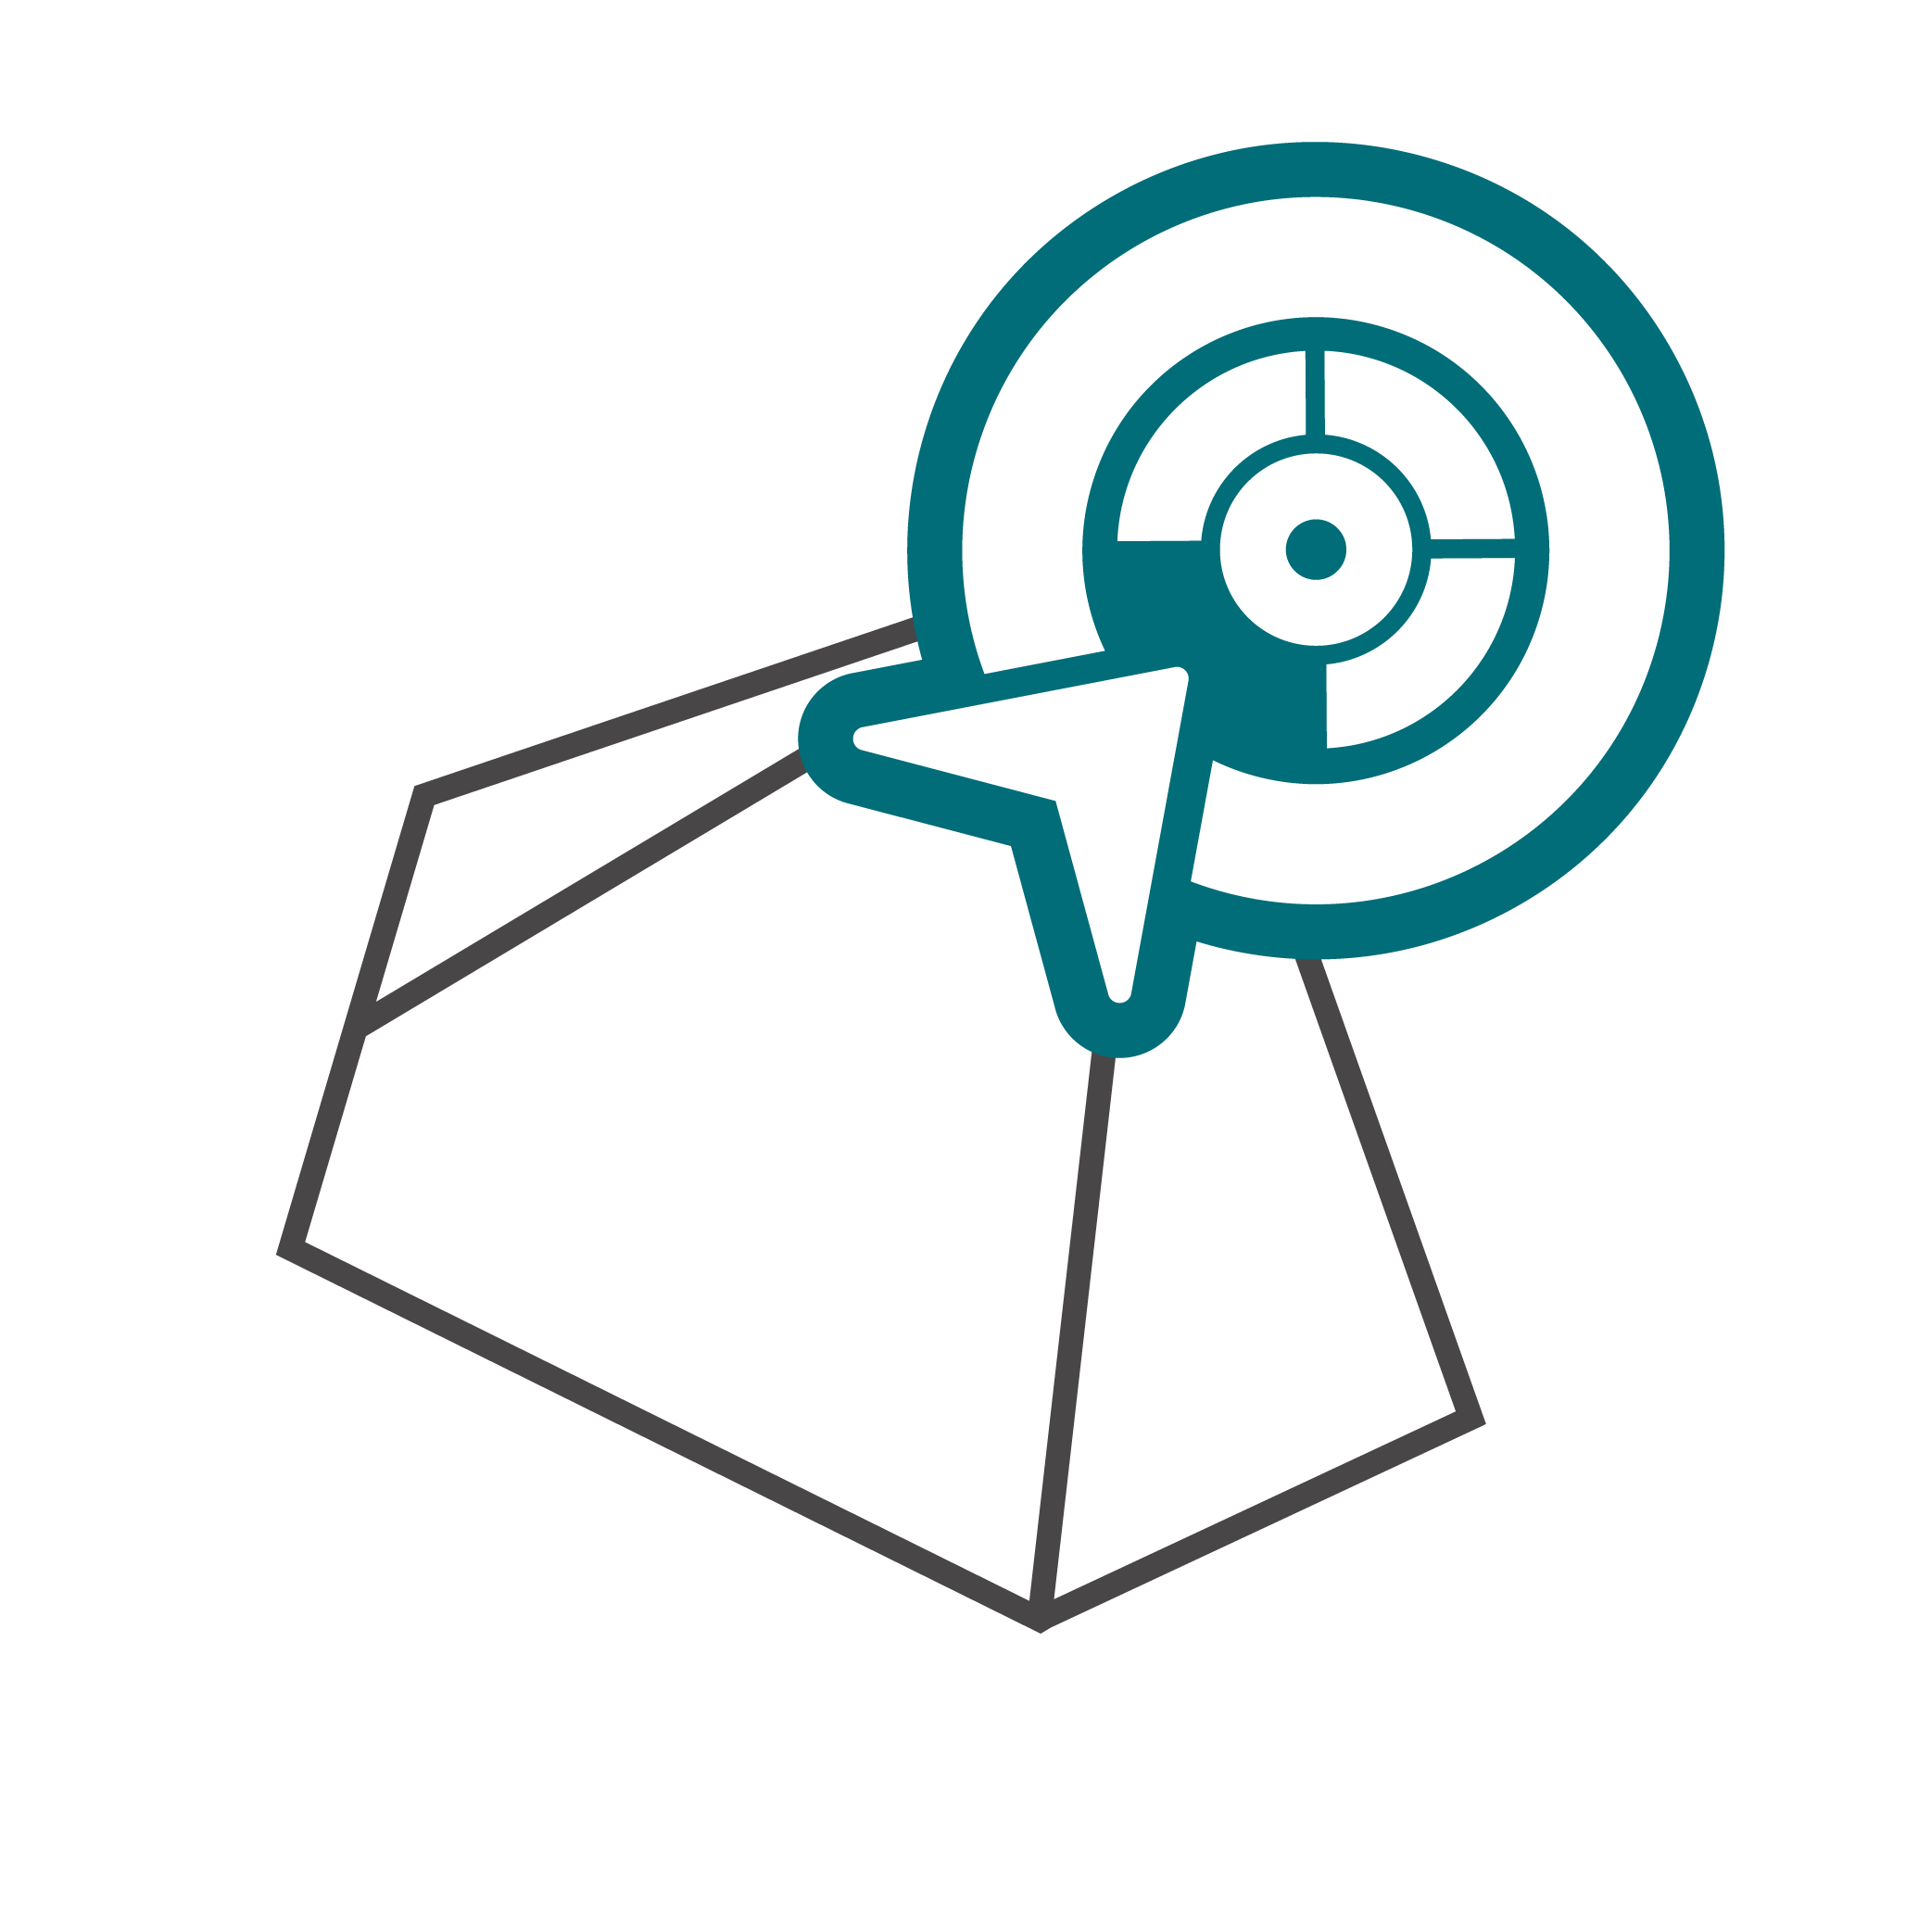 seo strategy icon with location pin and globe in nowhere consultants colors